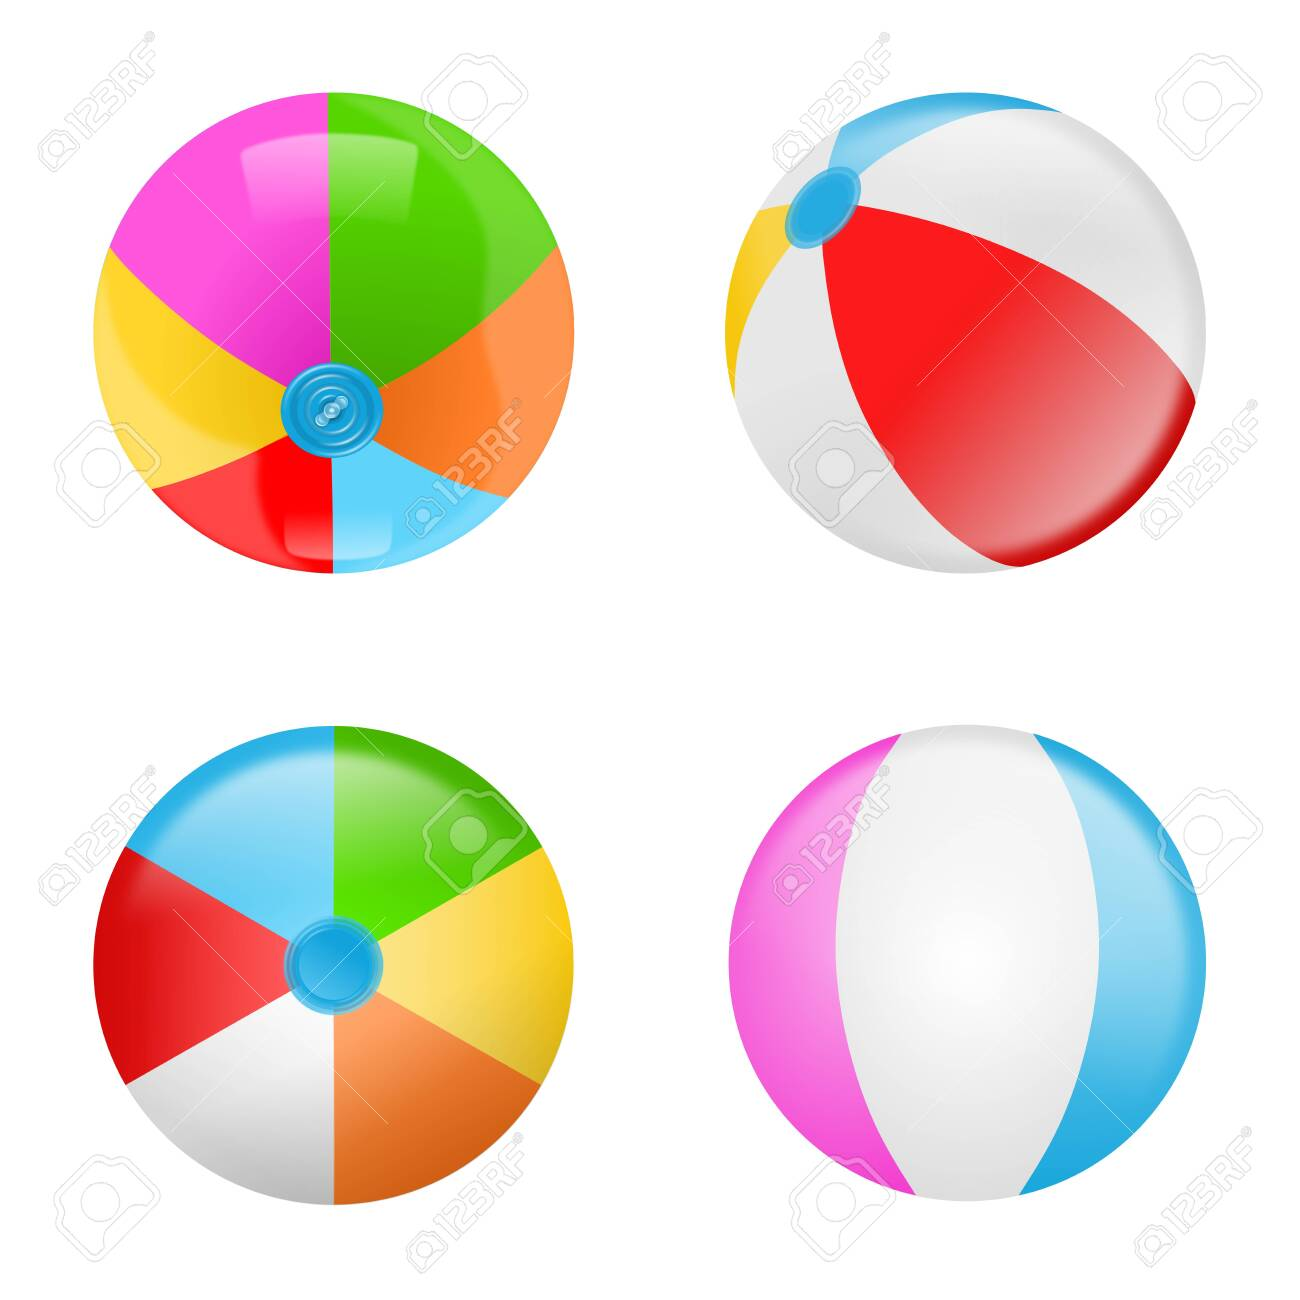 Set of colorful beach balls. Collection of inflatable rubber balls - 145178943